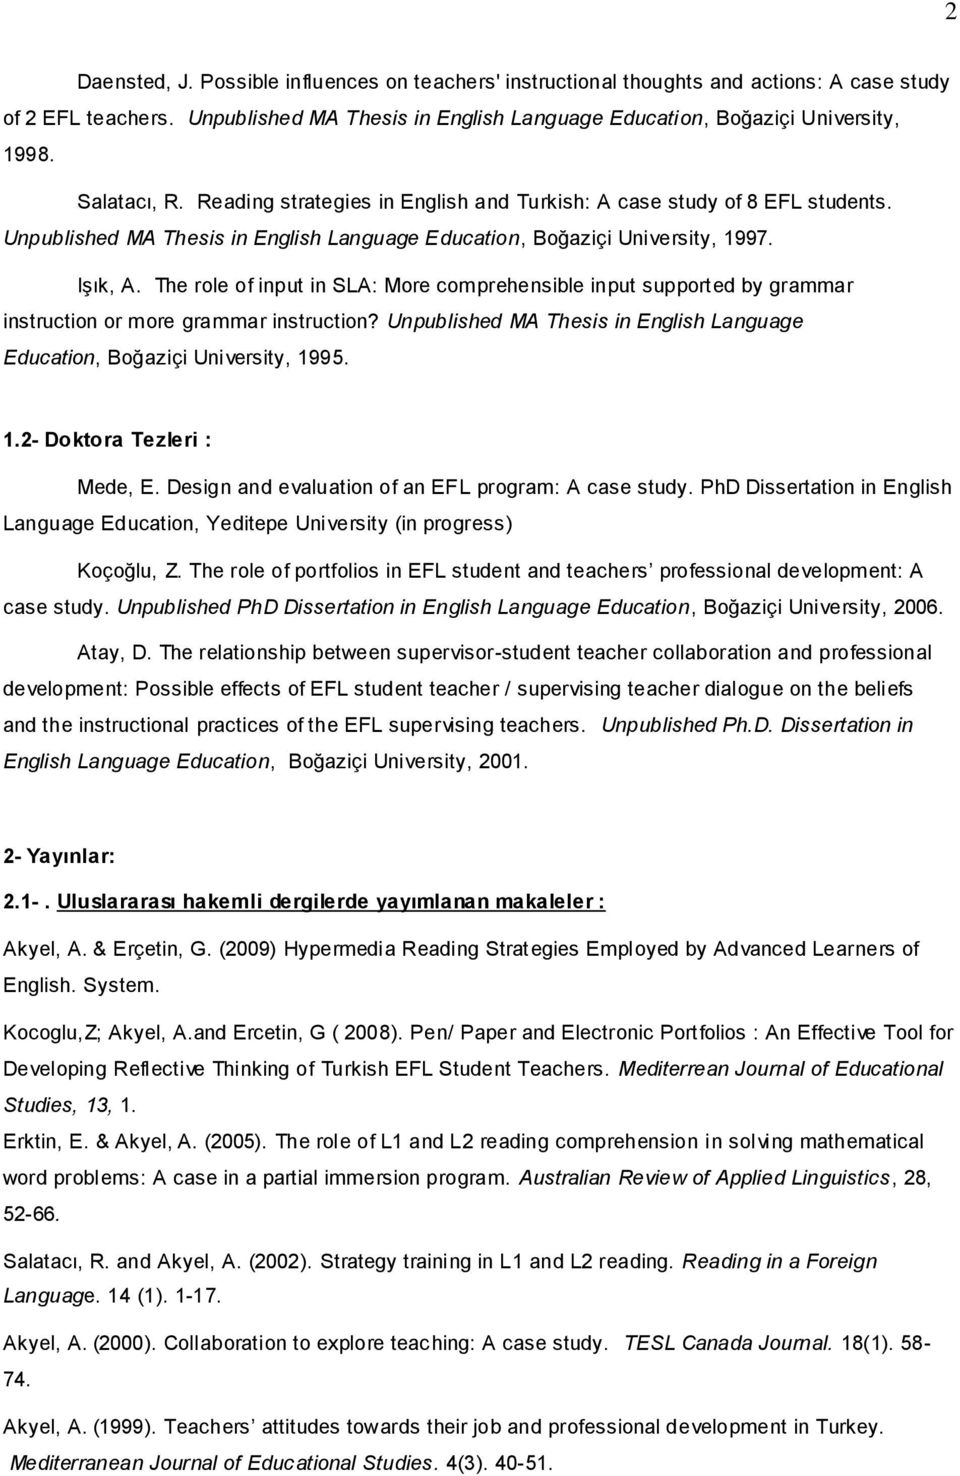 The role of input in SLA: More comprehensible input supported by grammar instruction or more grammar instruction? Unpublished MA Thesis in English Language Education, Boğaziçi University, 19